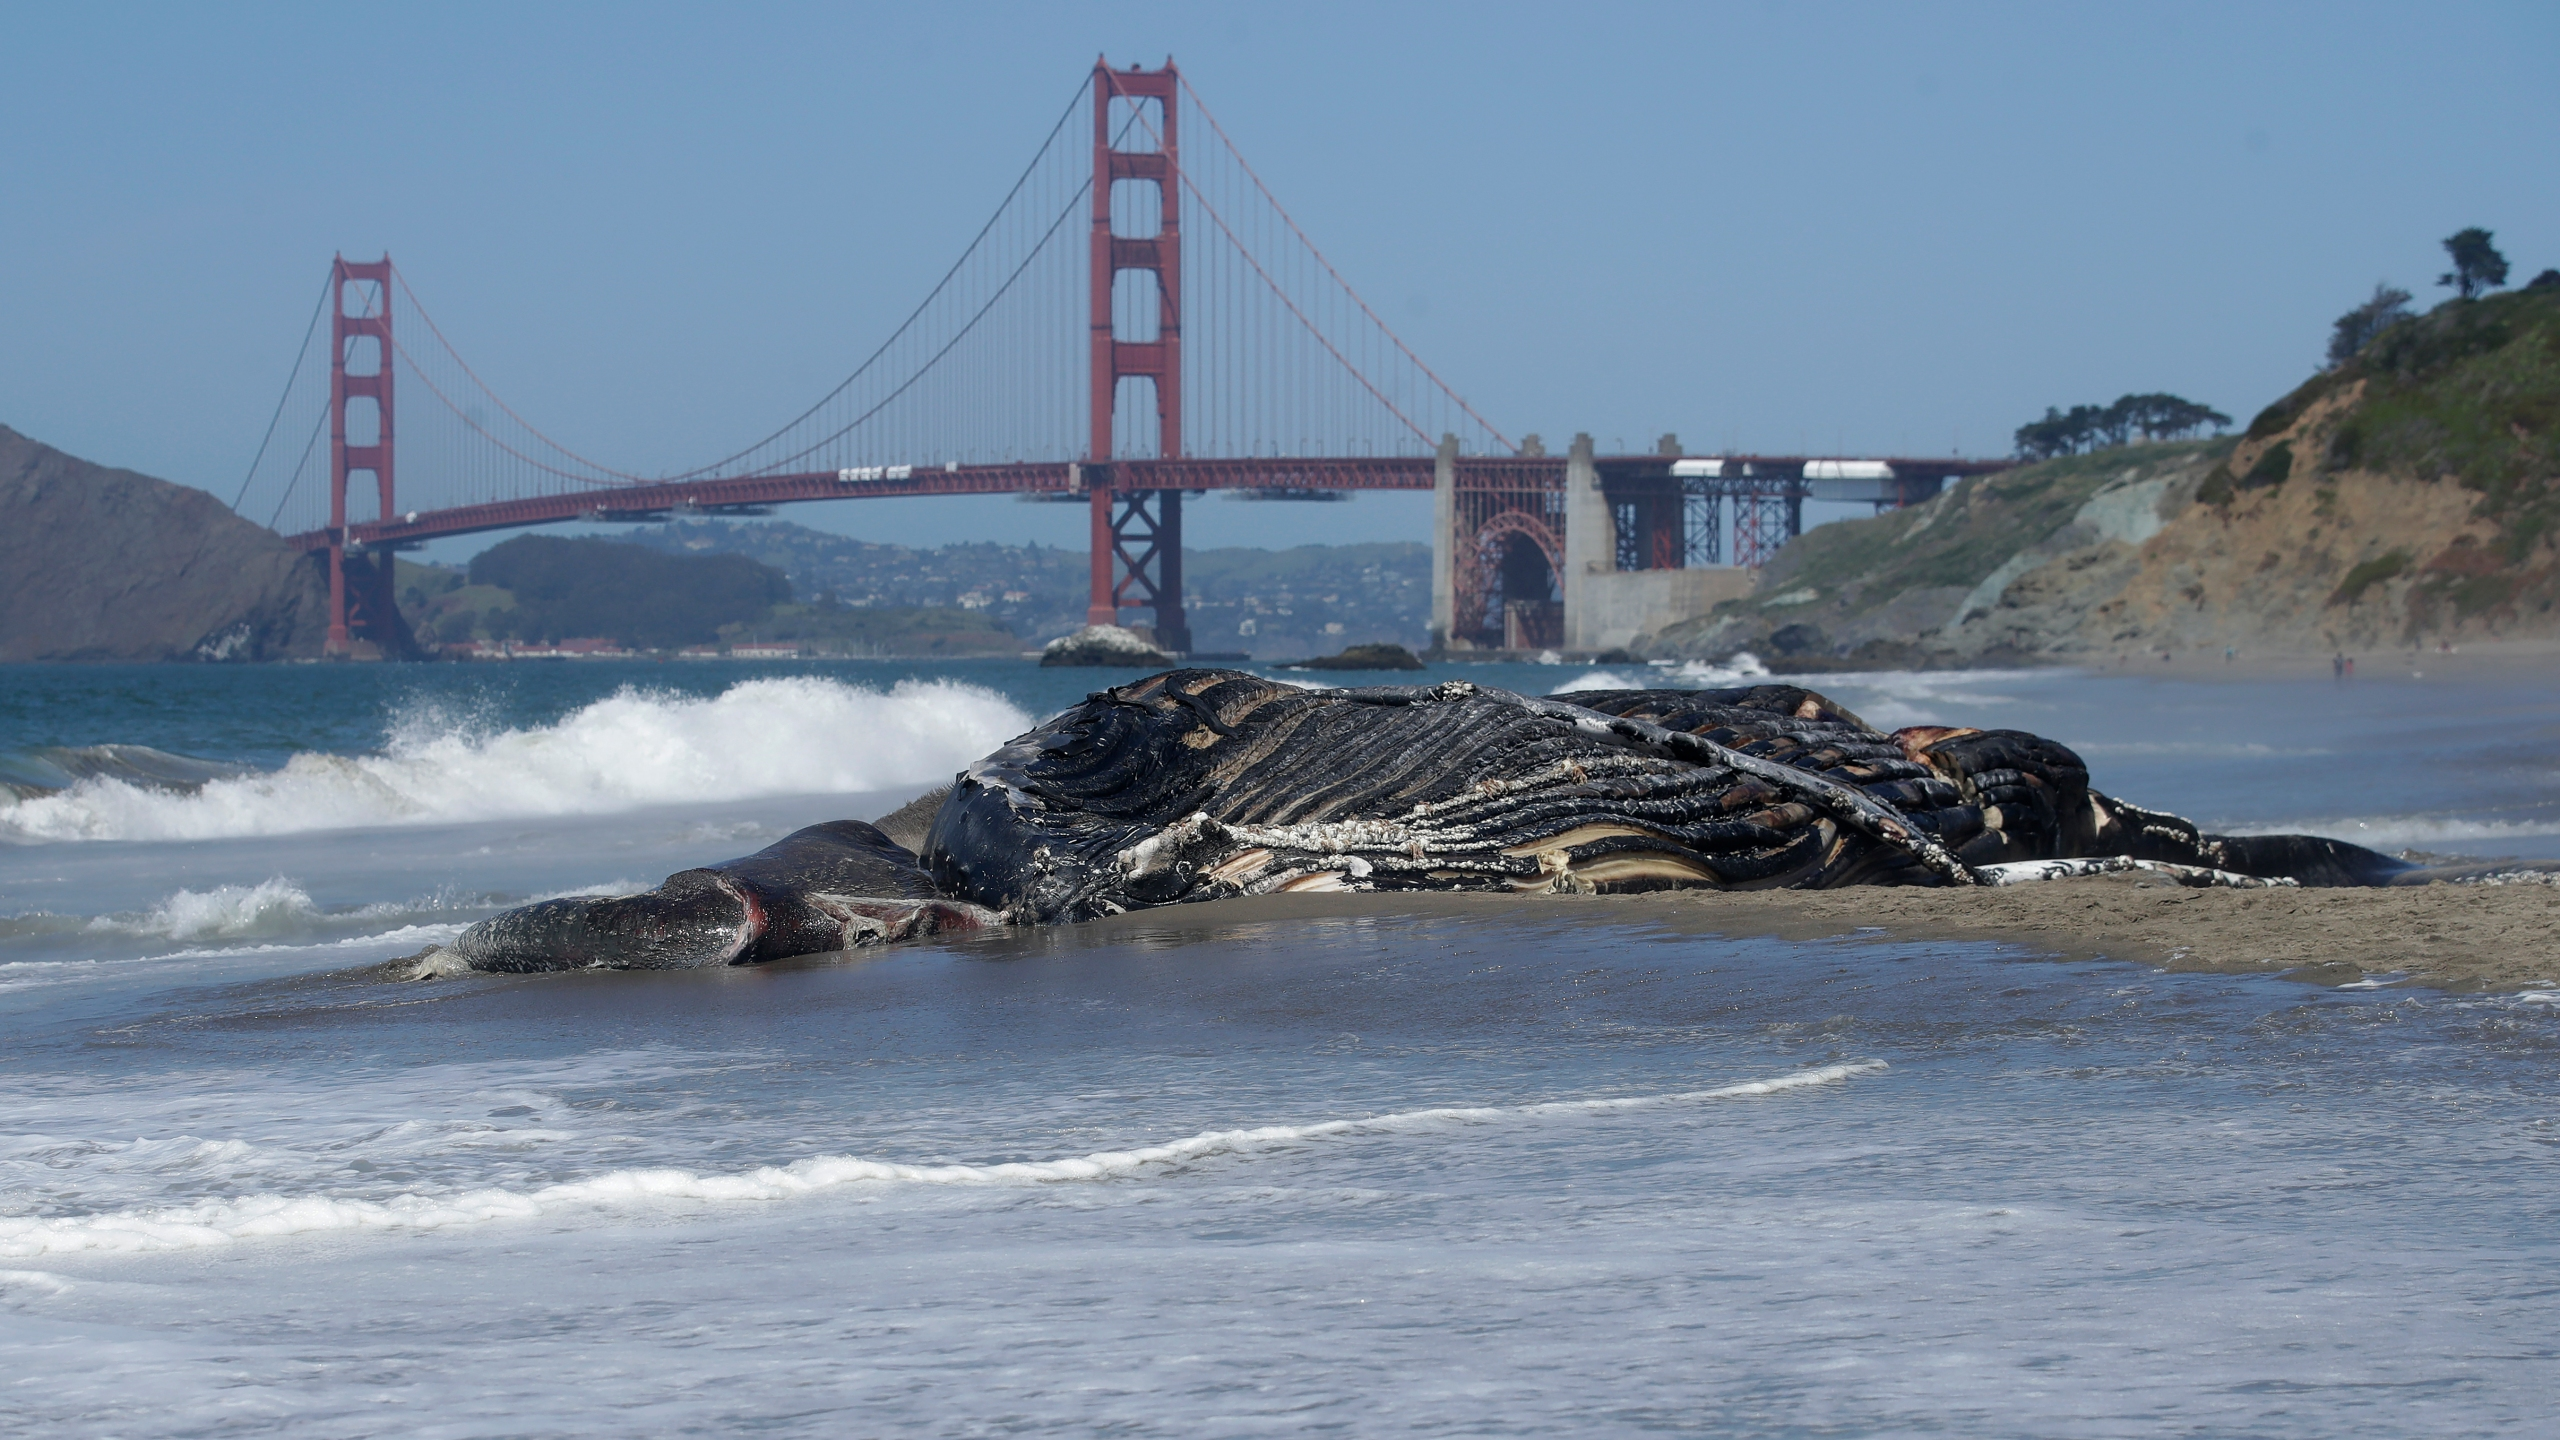 Humpback Whale Washes Up On San